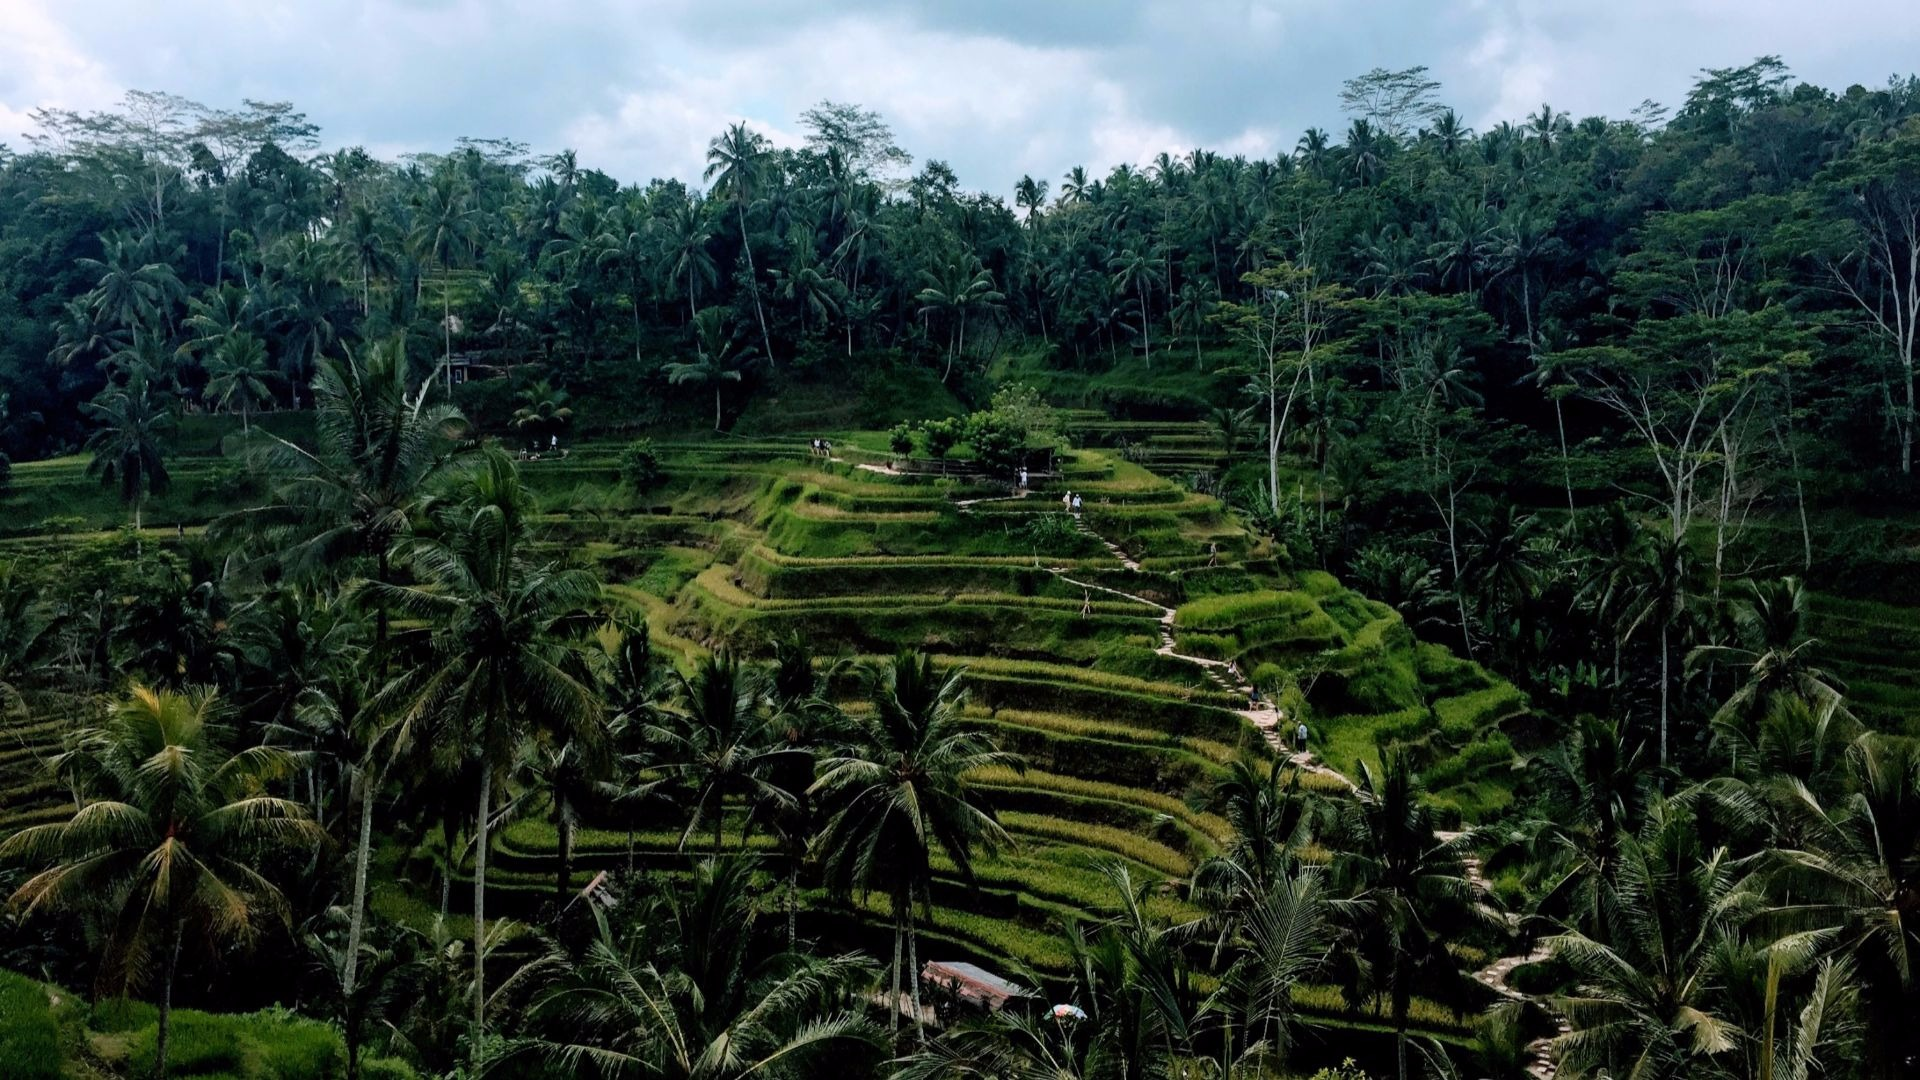 Two days in Ubud: What To Do and Eat